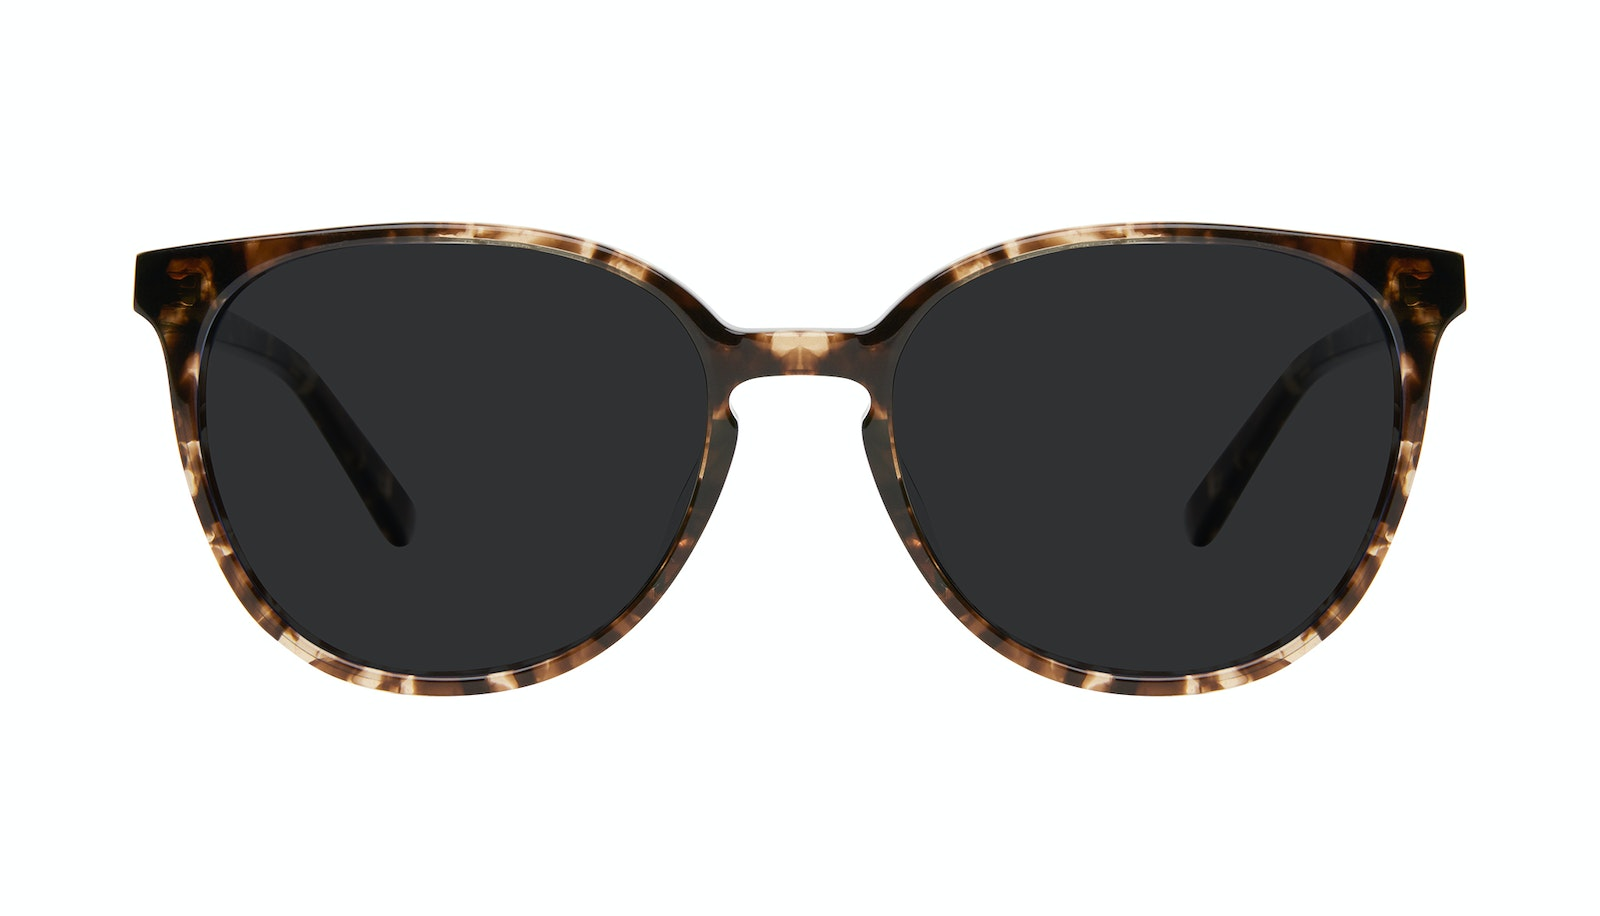 Affordable Fashion Glasses Round Sunglasses Women Impression Leopard